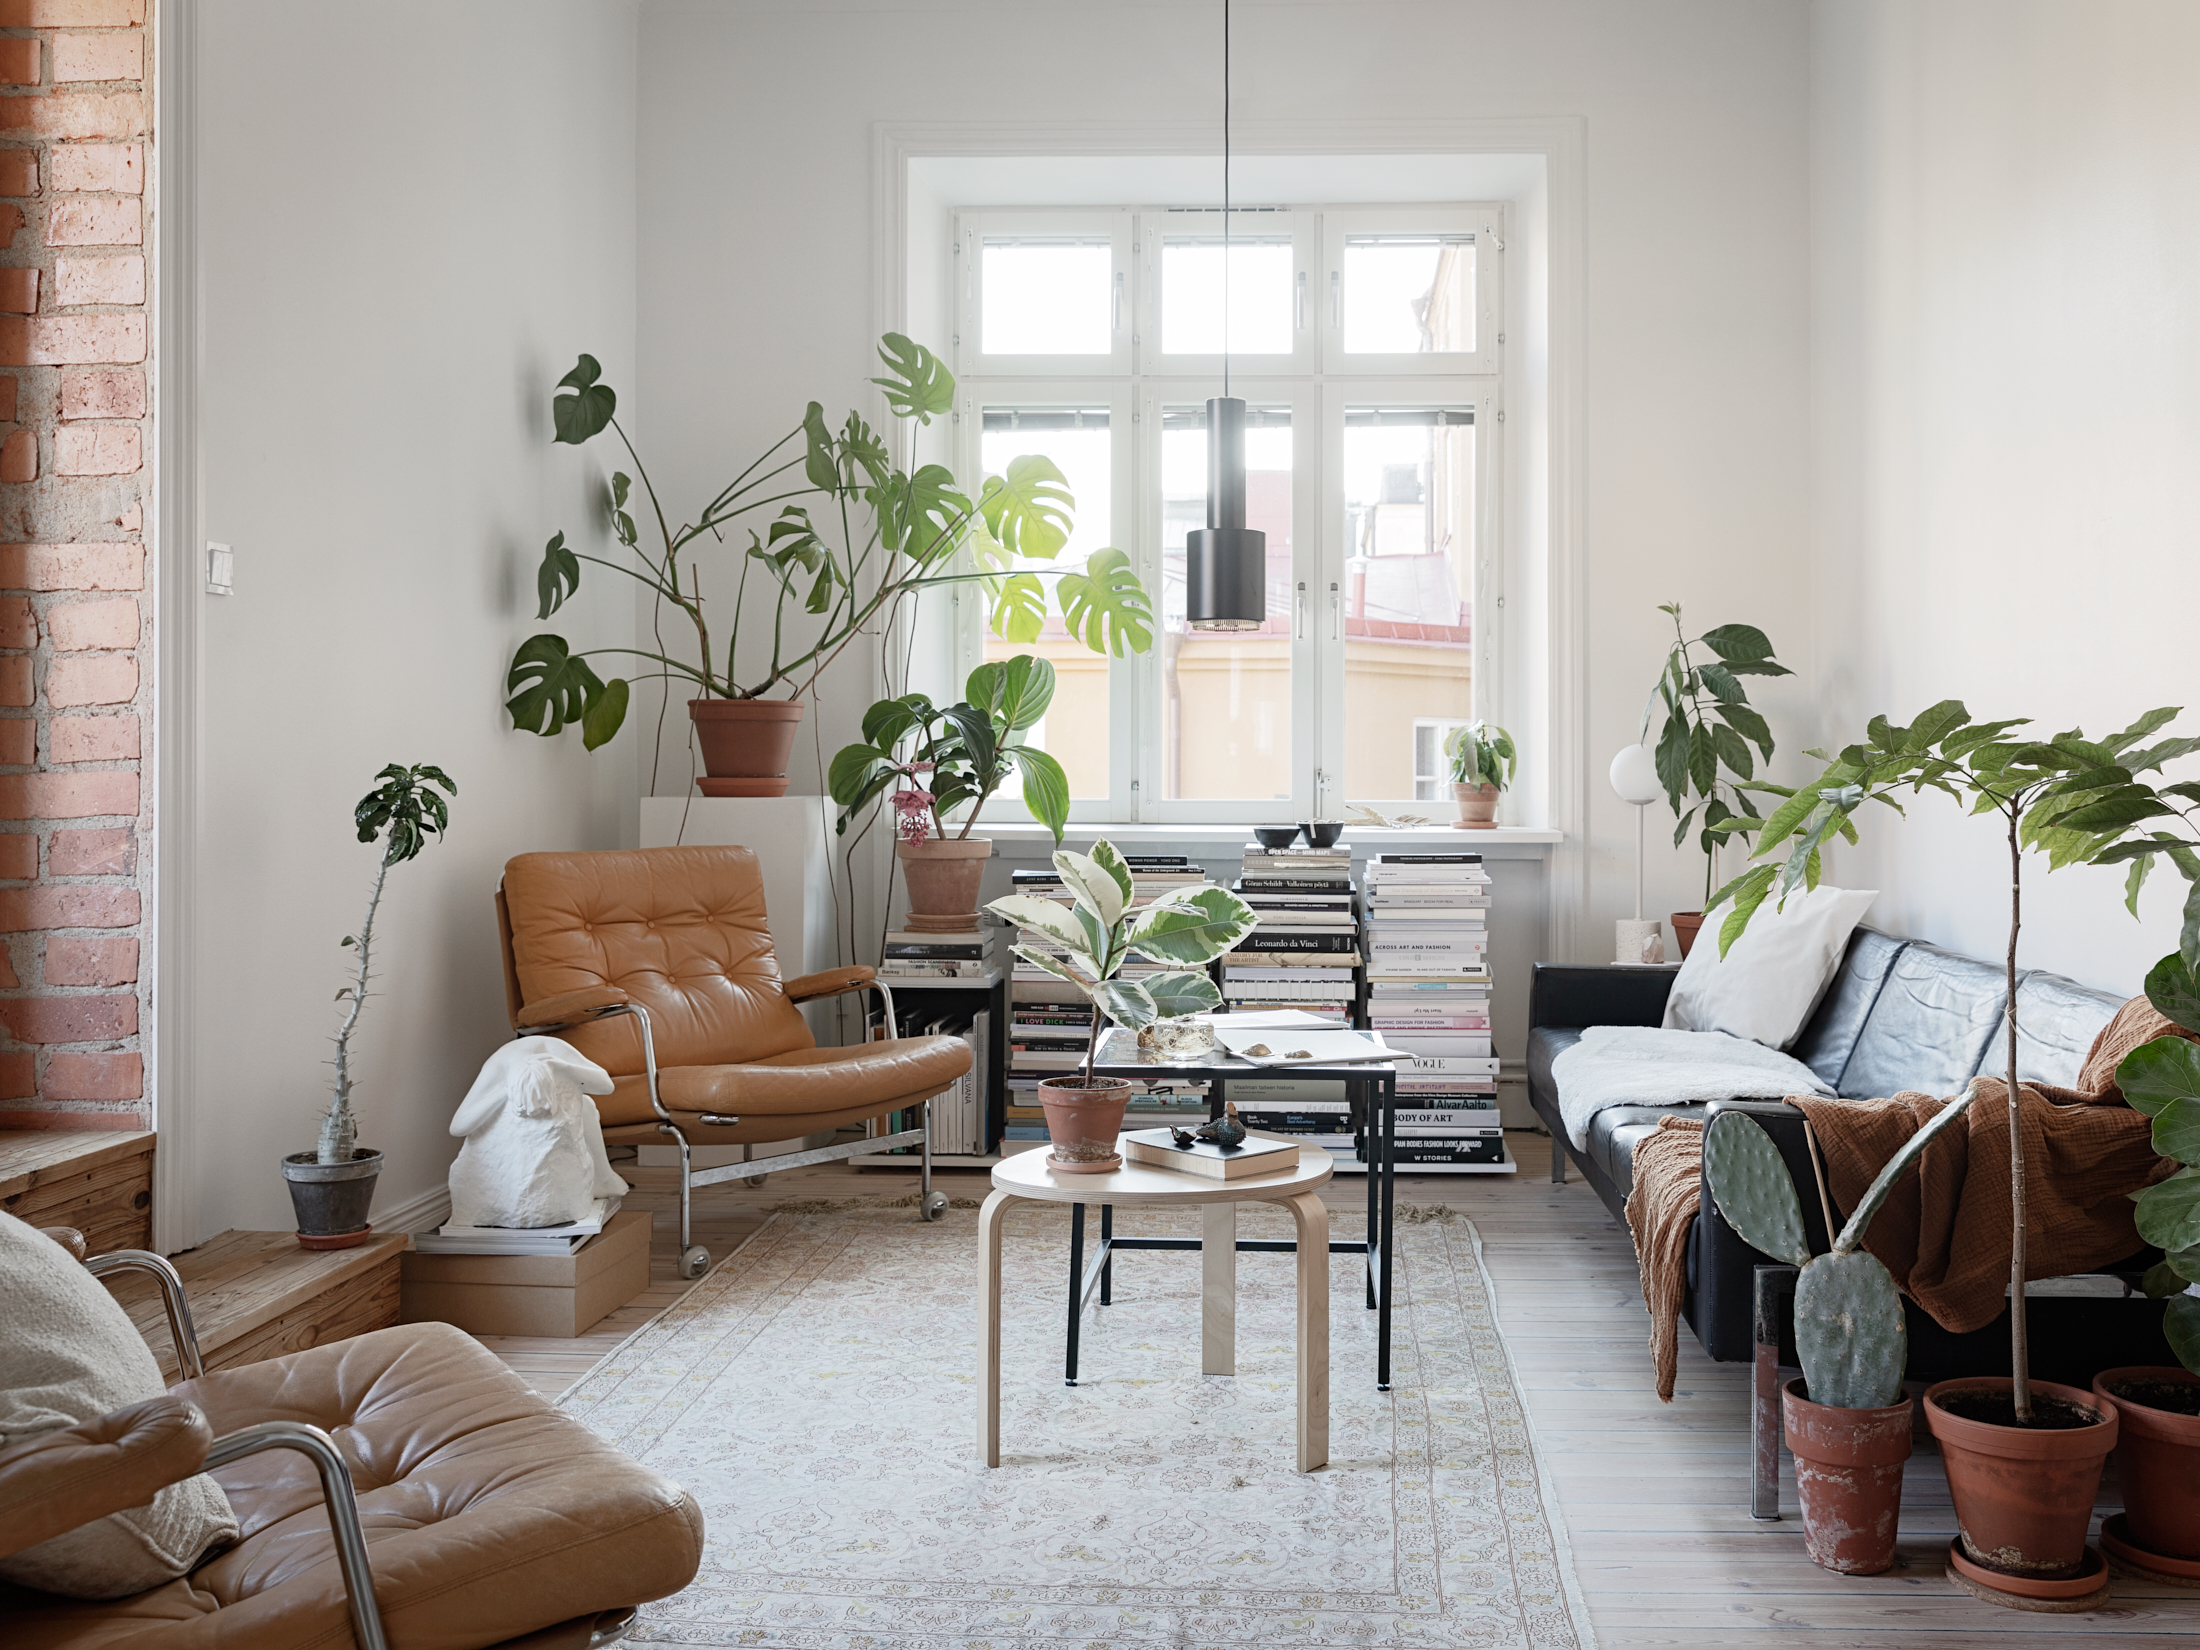 The Nordroom - A White Plant-Filled Scandinavian Apartment 1.jpg